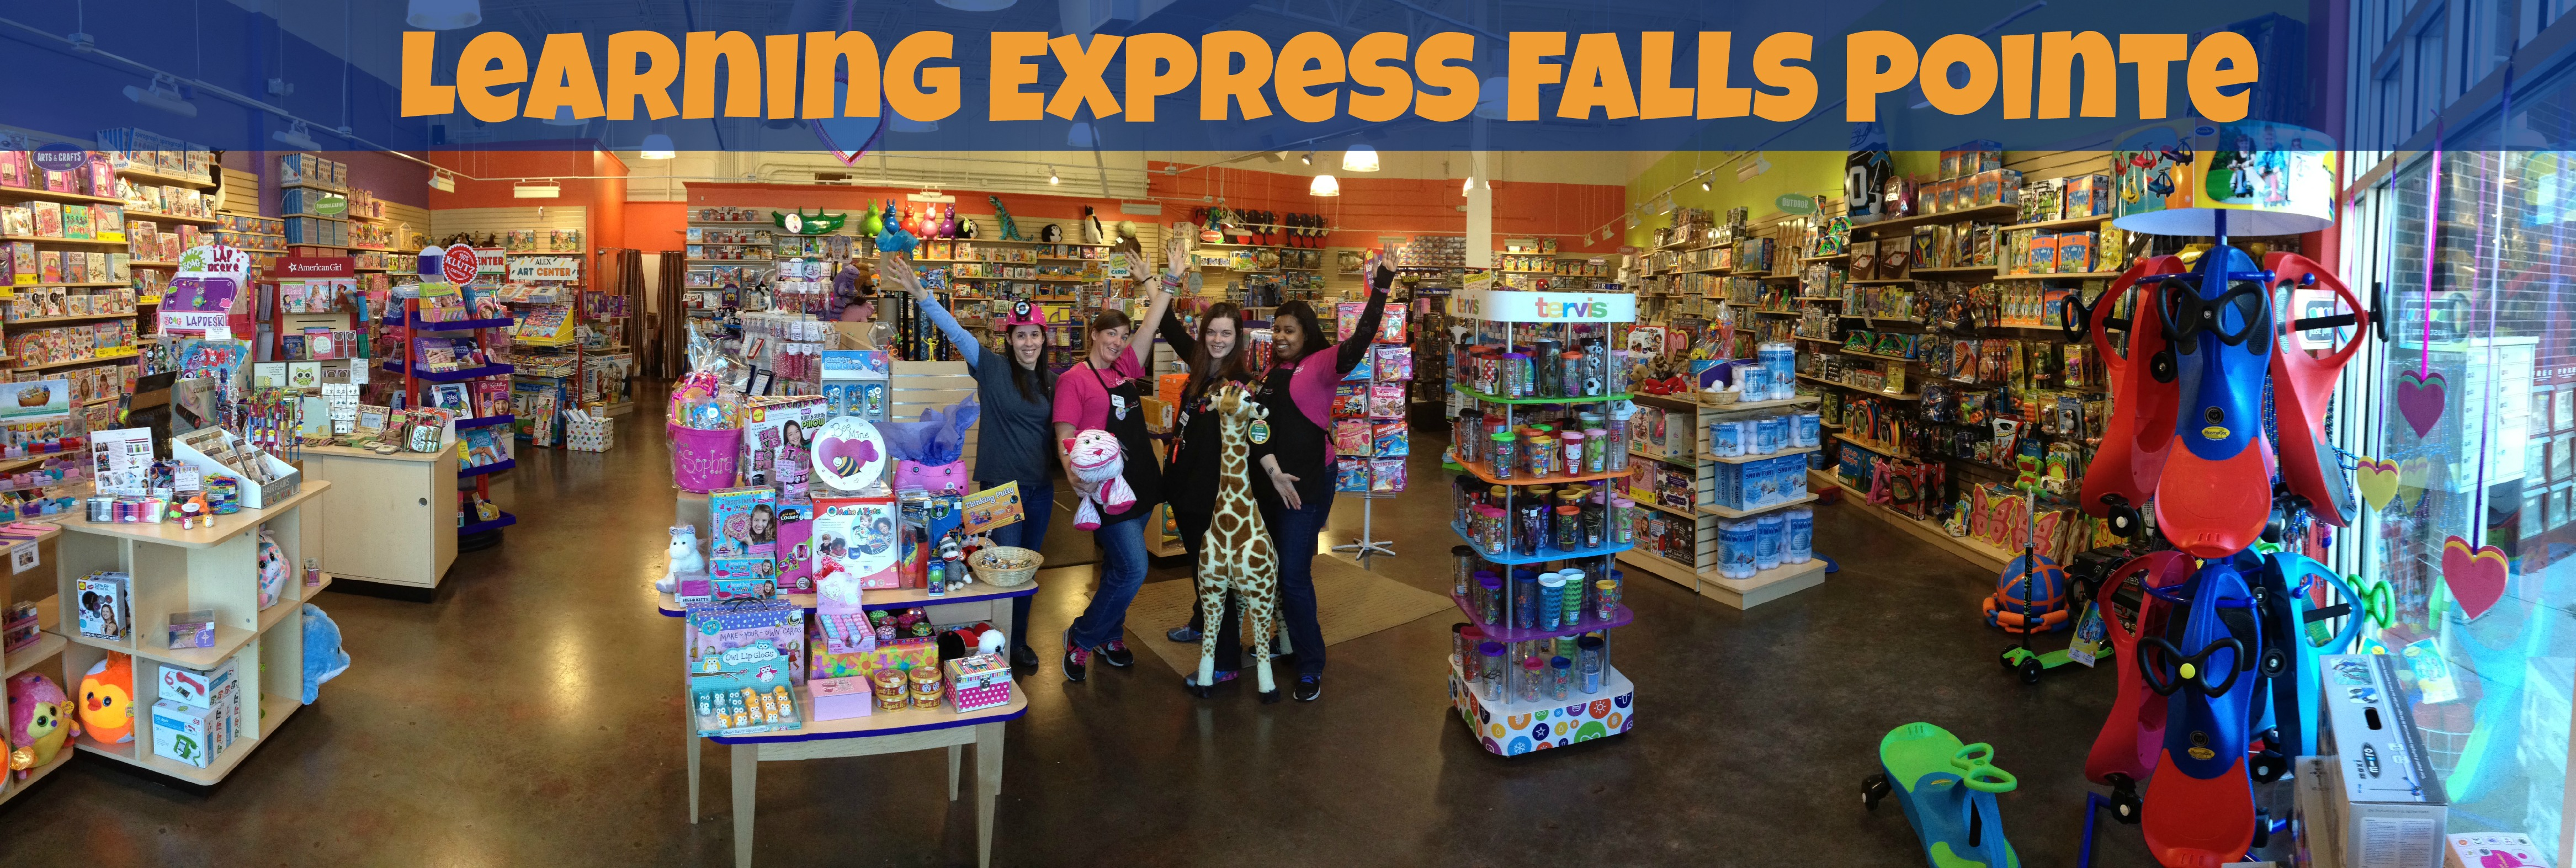 Welcome Learning Express Falls Pointe! ? Learning Express Gifts- Brands included PopSocket, Star ...